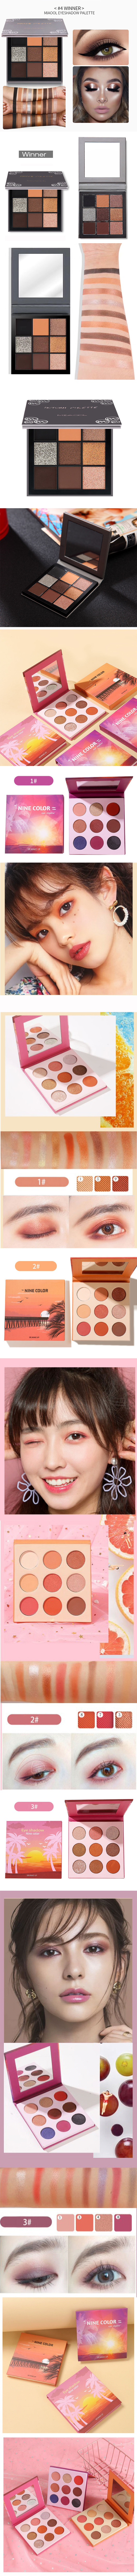 Hot Selling Cosmetic Makeup Alluring 9 Colors Glitter Shimmer Matte Eye Shadow Palette